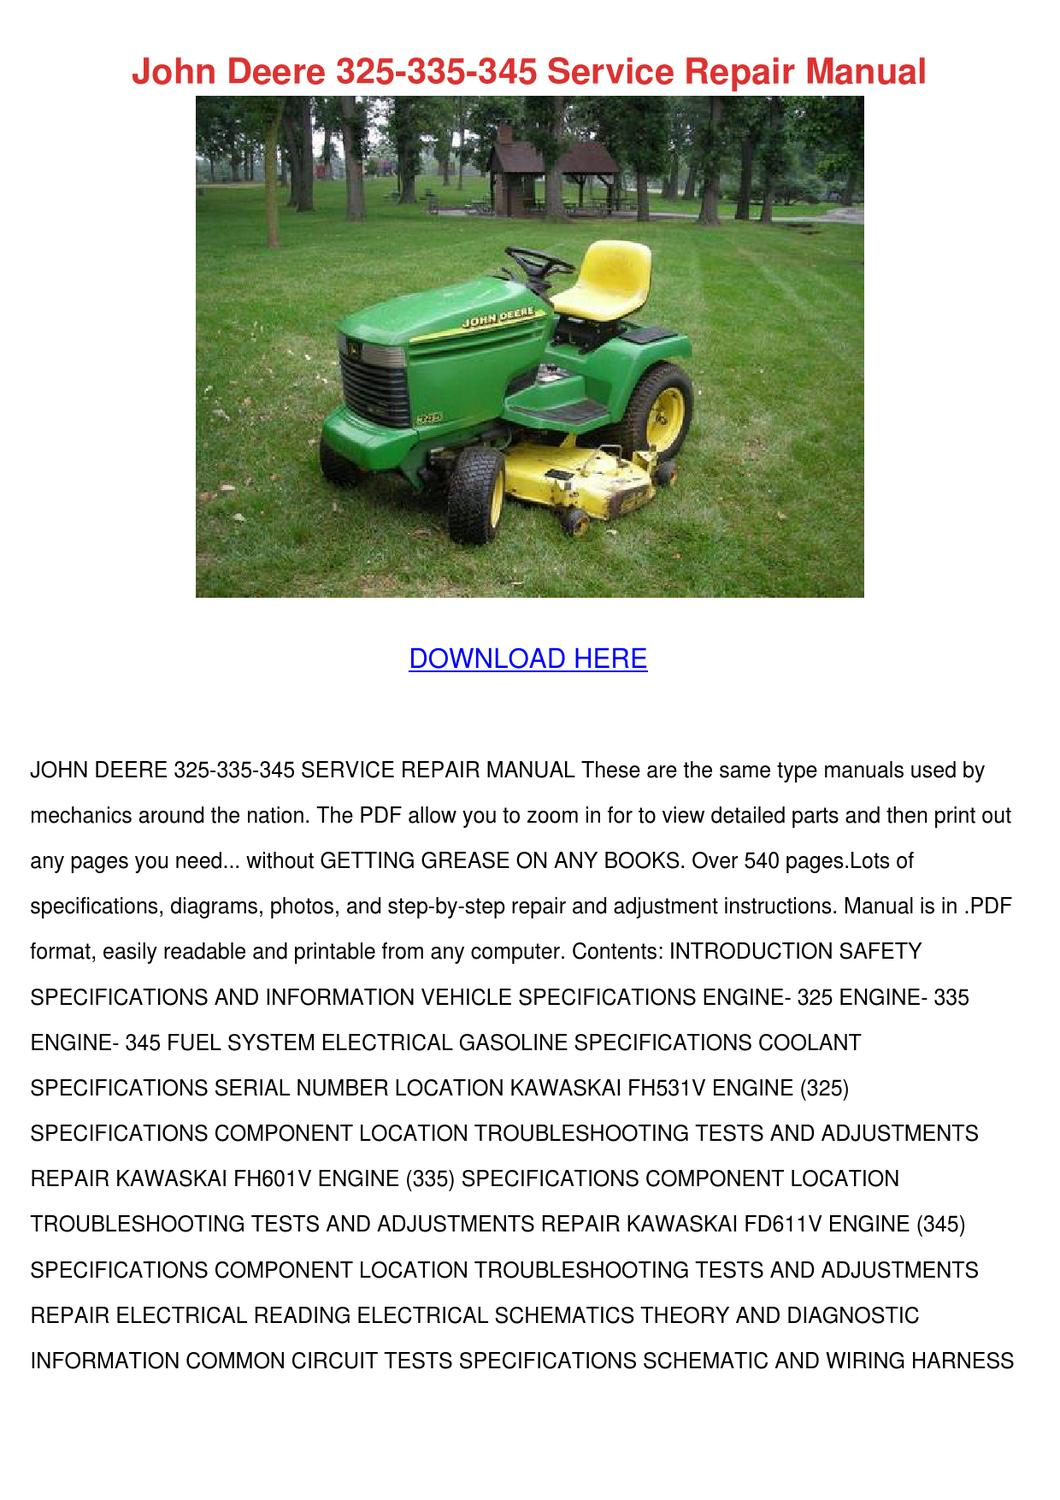 john deere service repair manual by kari mabey issuu